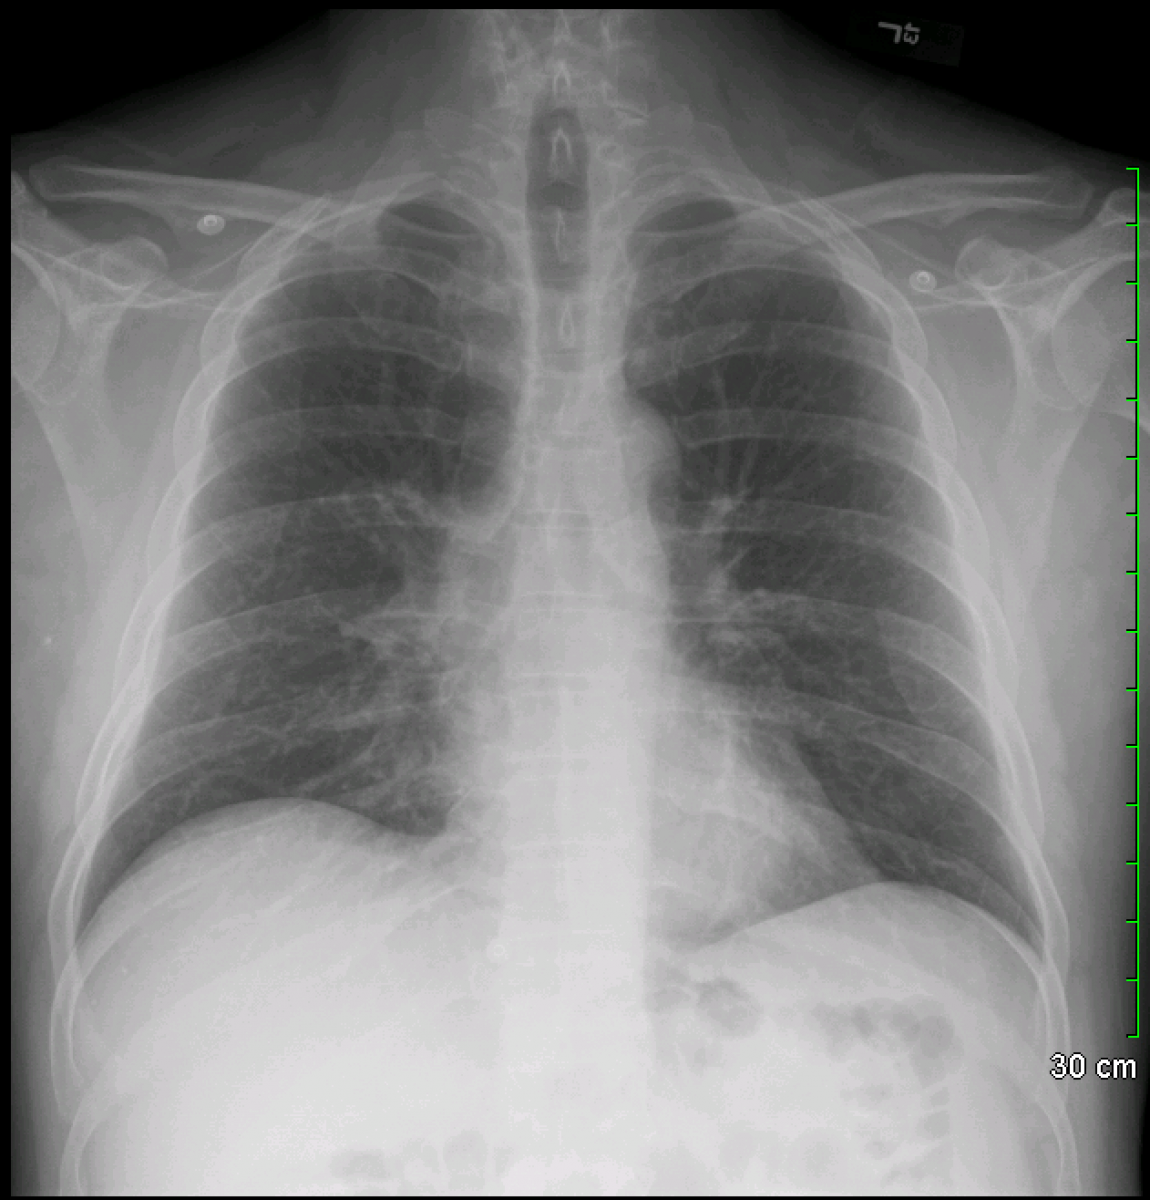 Archive Of Unremarkable Radiological Studies: Chest X-Ray - Stepwards